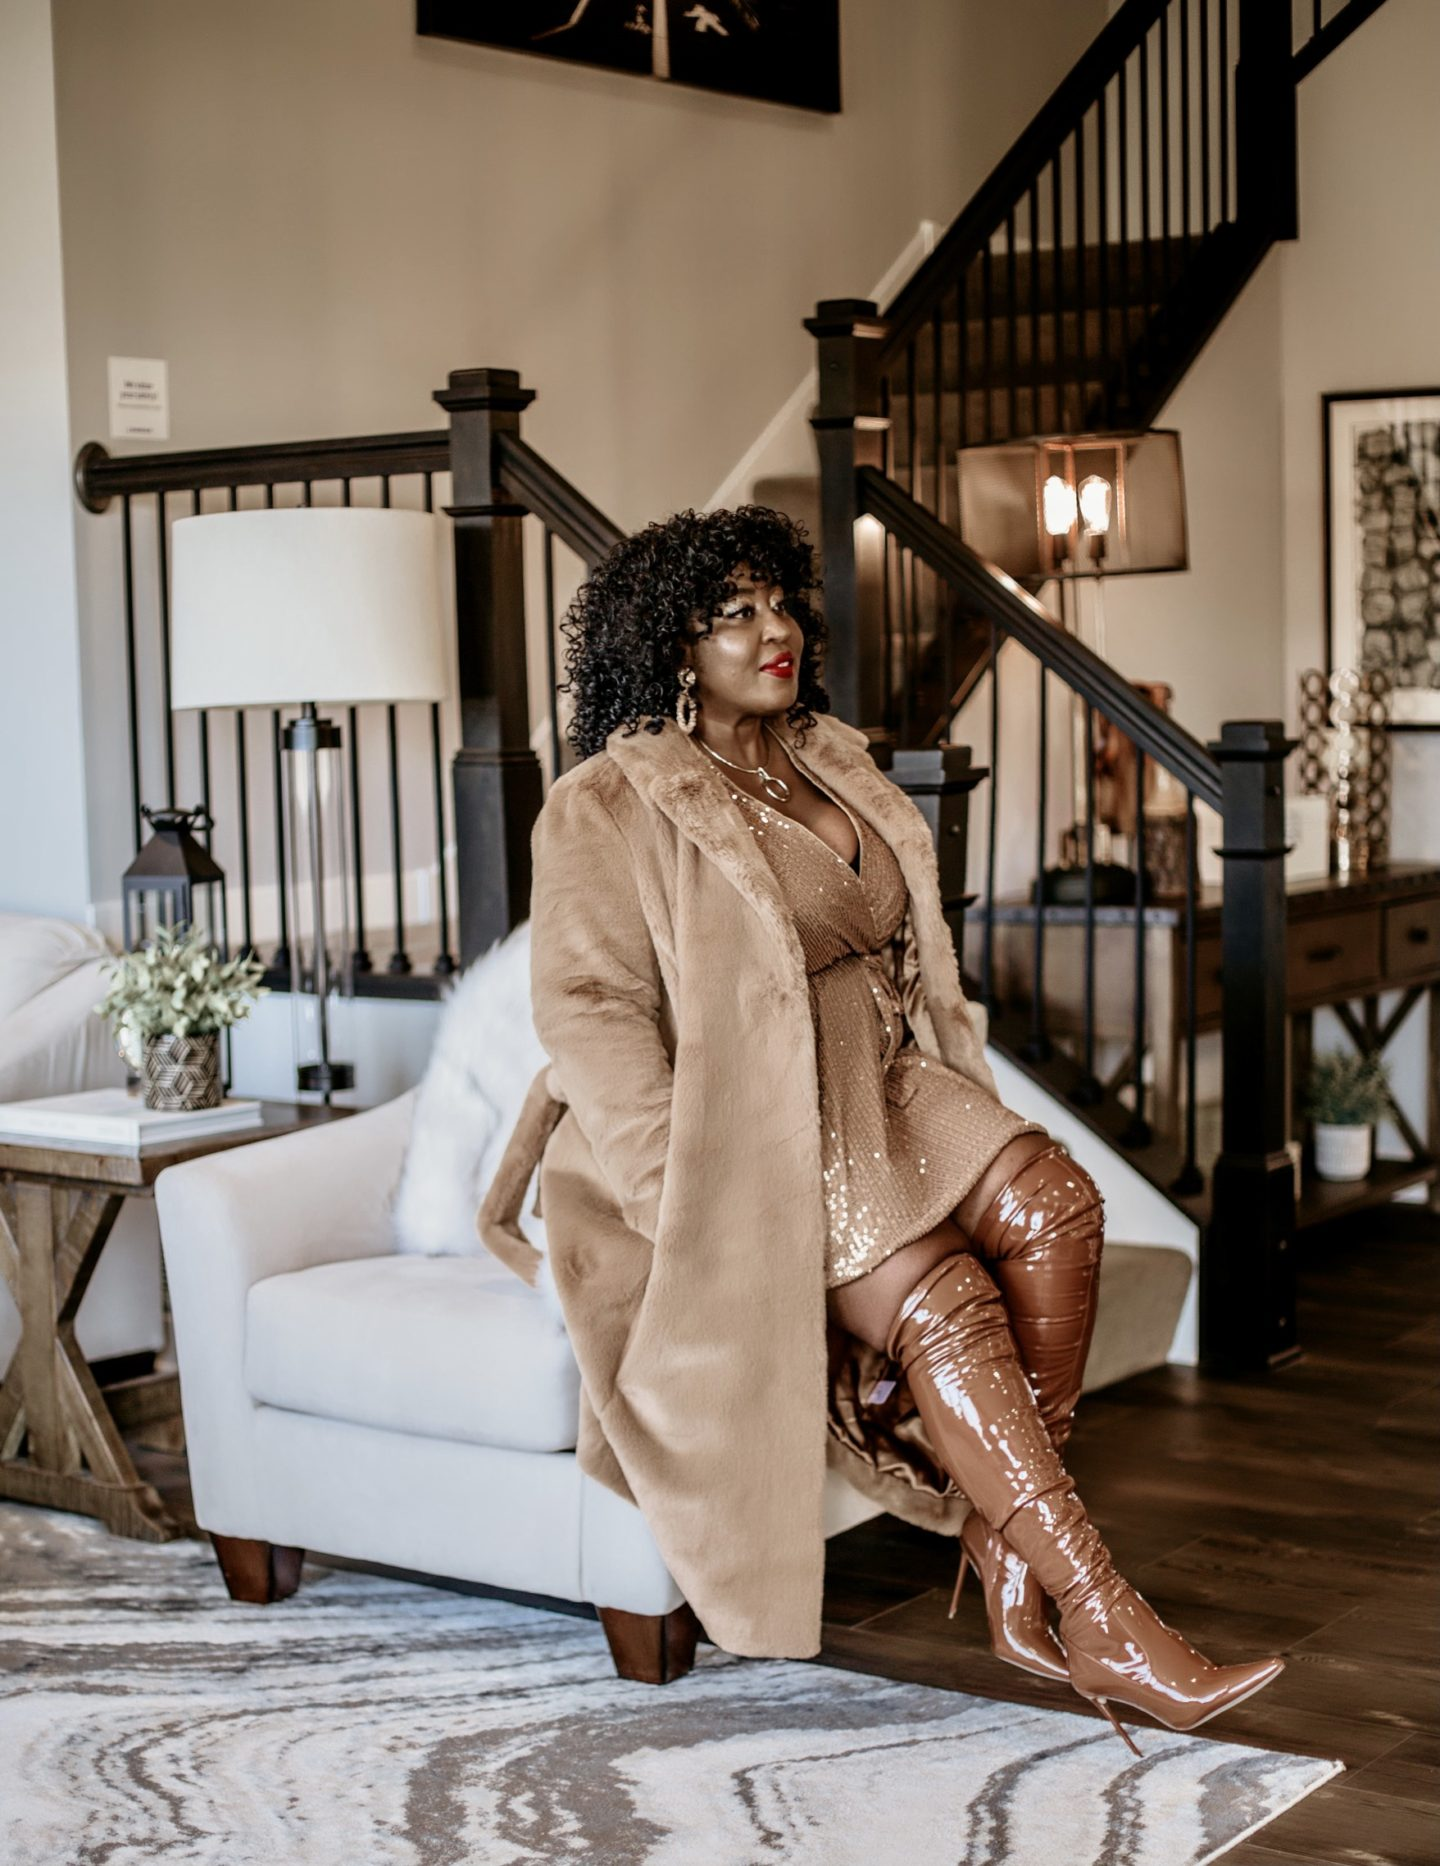 monochromatic-winter-glam-style-camel-coat-sequin-dress-hypnozglam